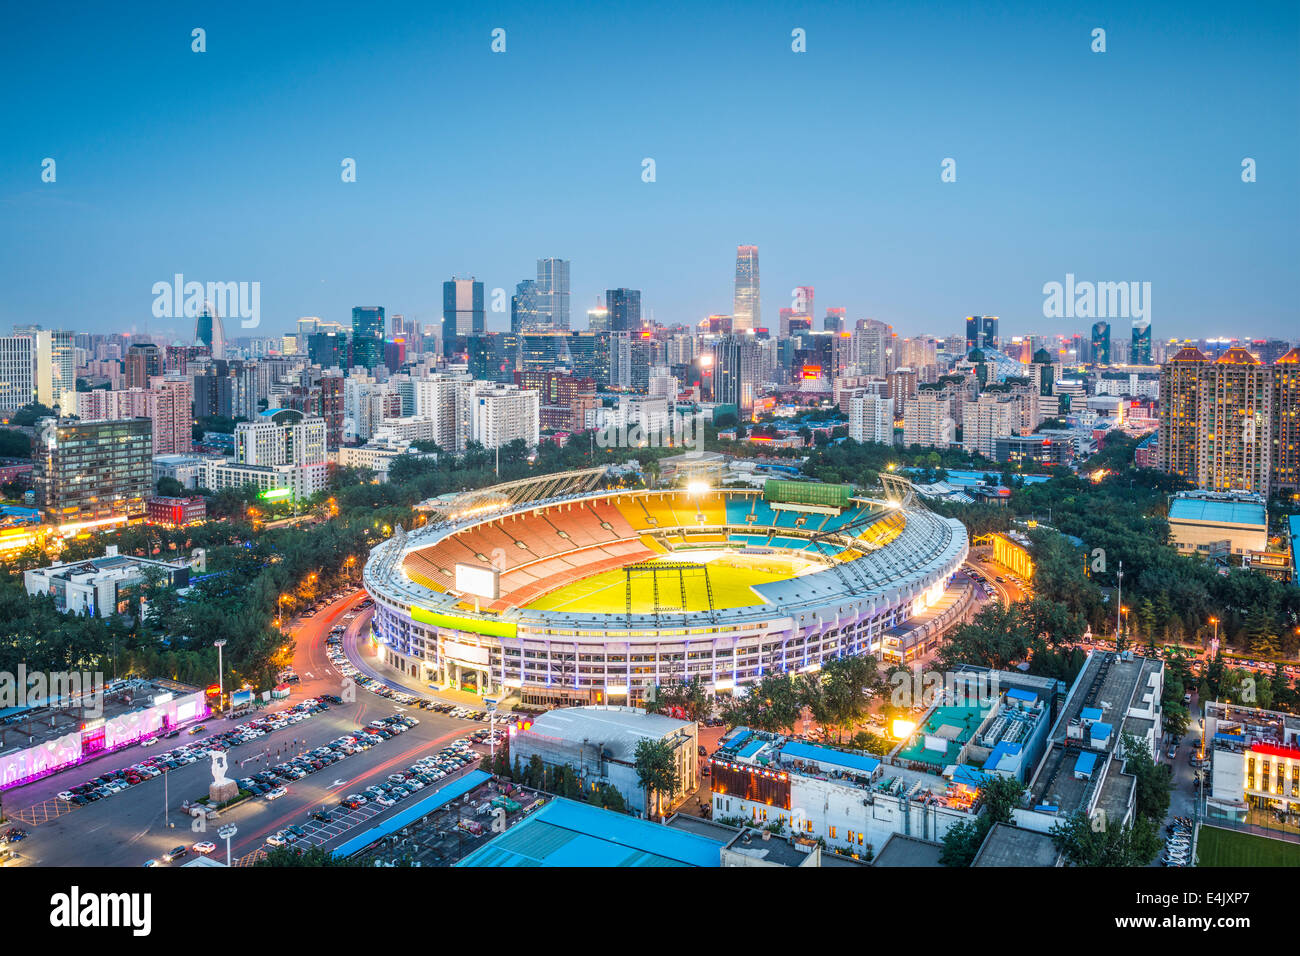 Beijing, China skyline and stadium. - Stock Image